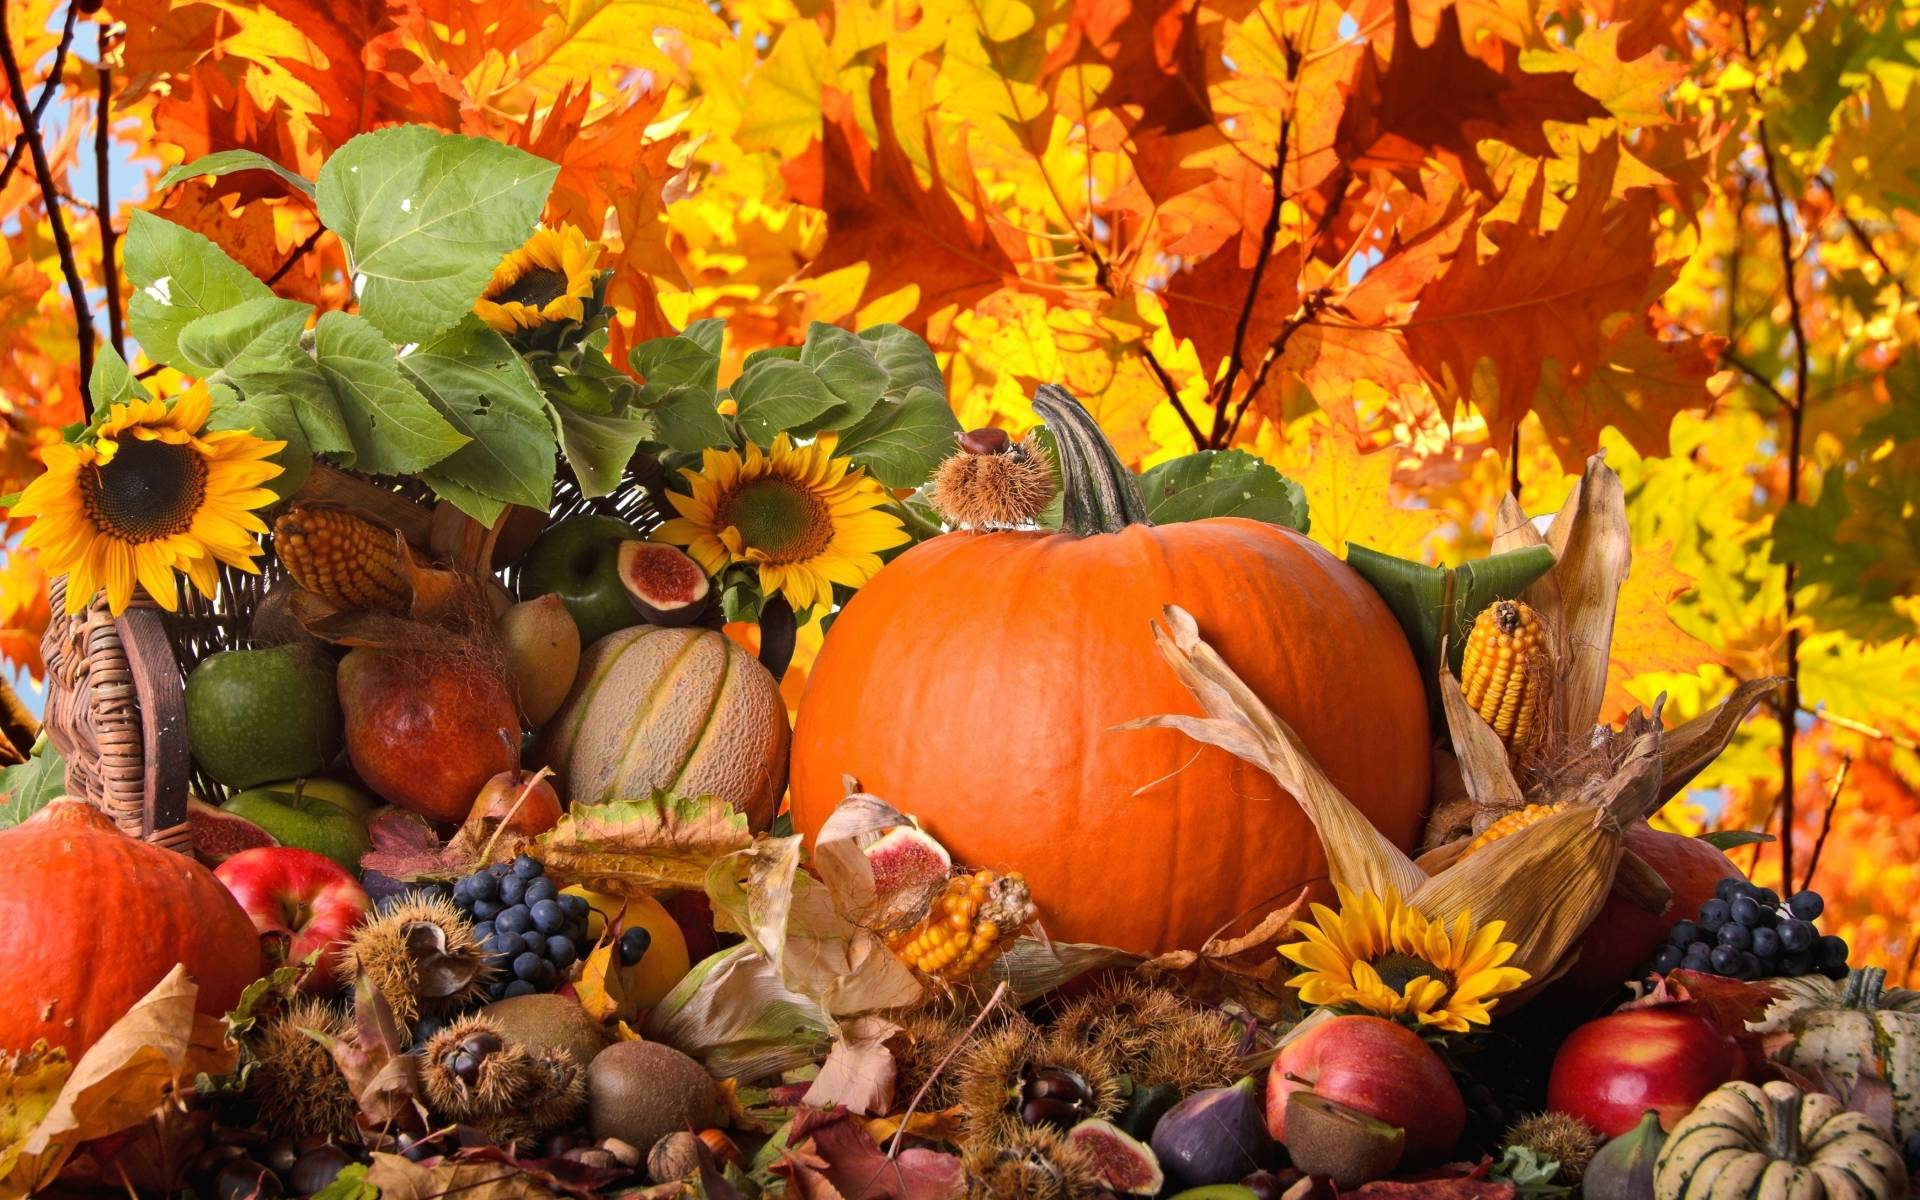 Thanksgiving Holiday Wallpapers   Top Thanksgiving Holiday 1920x1200